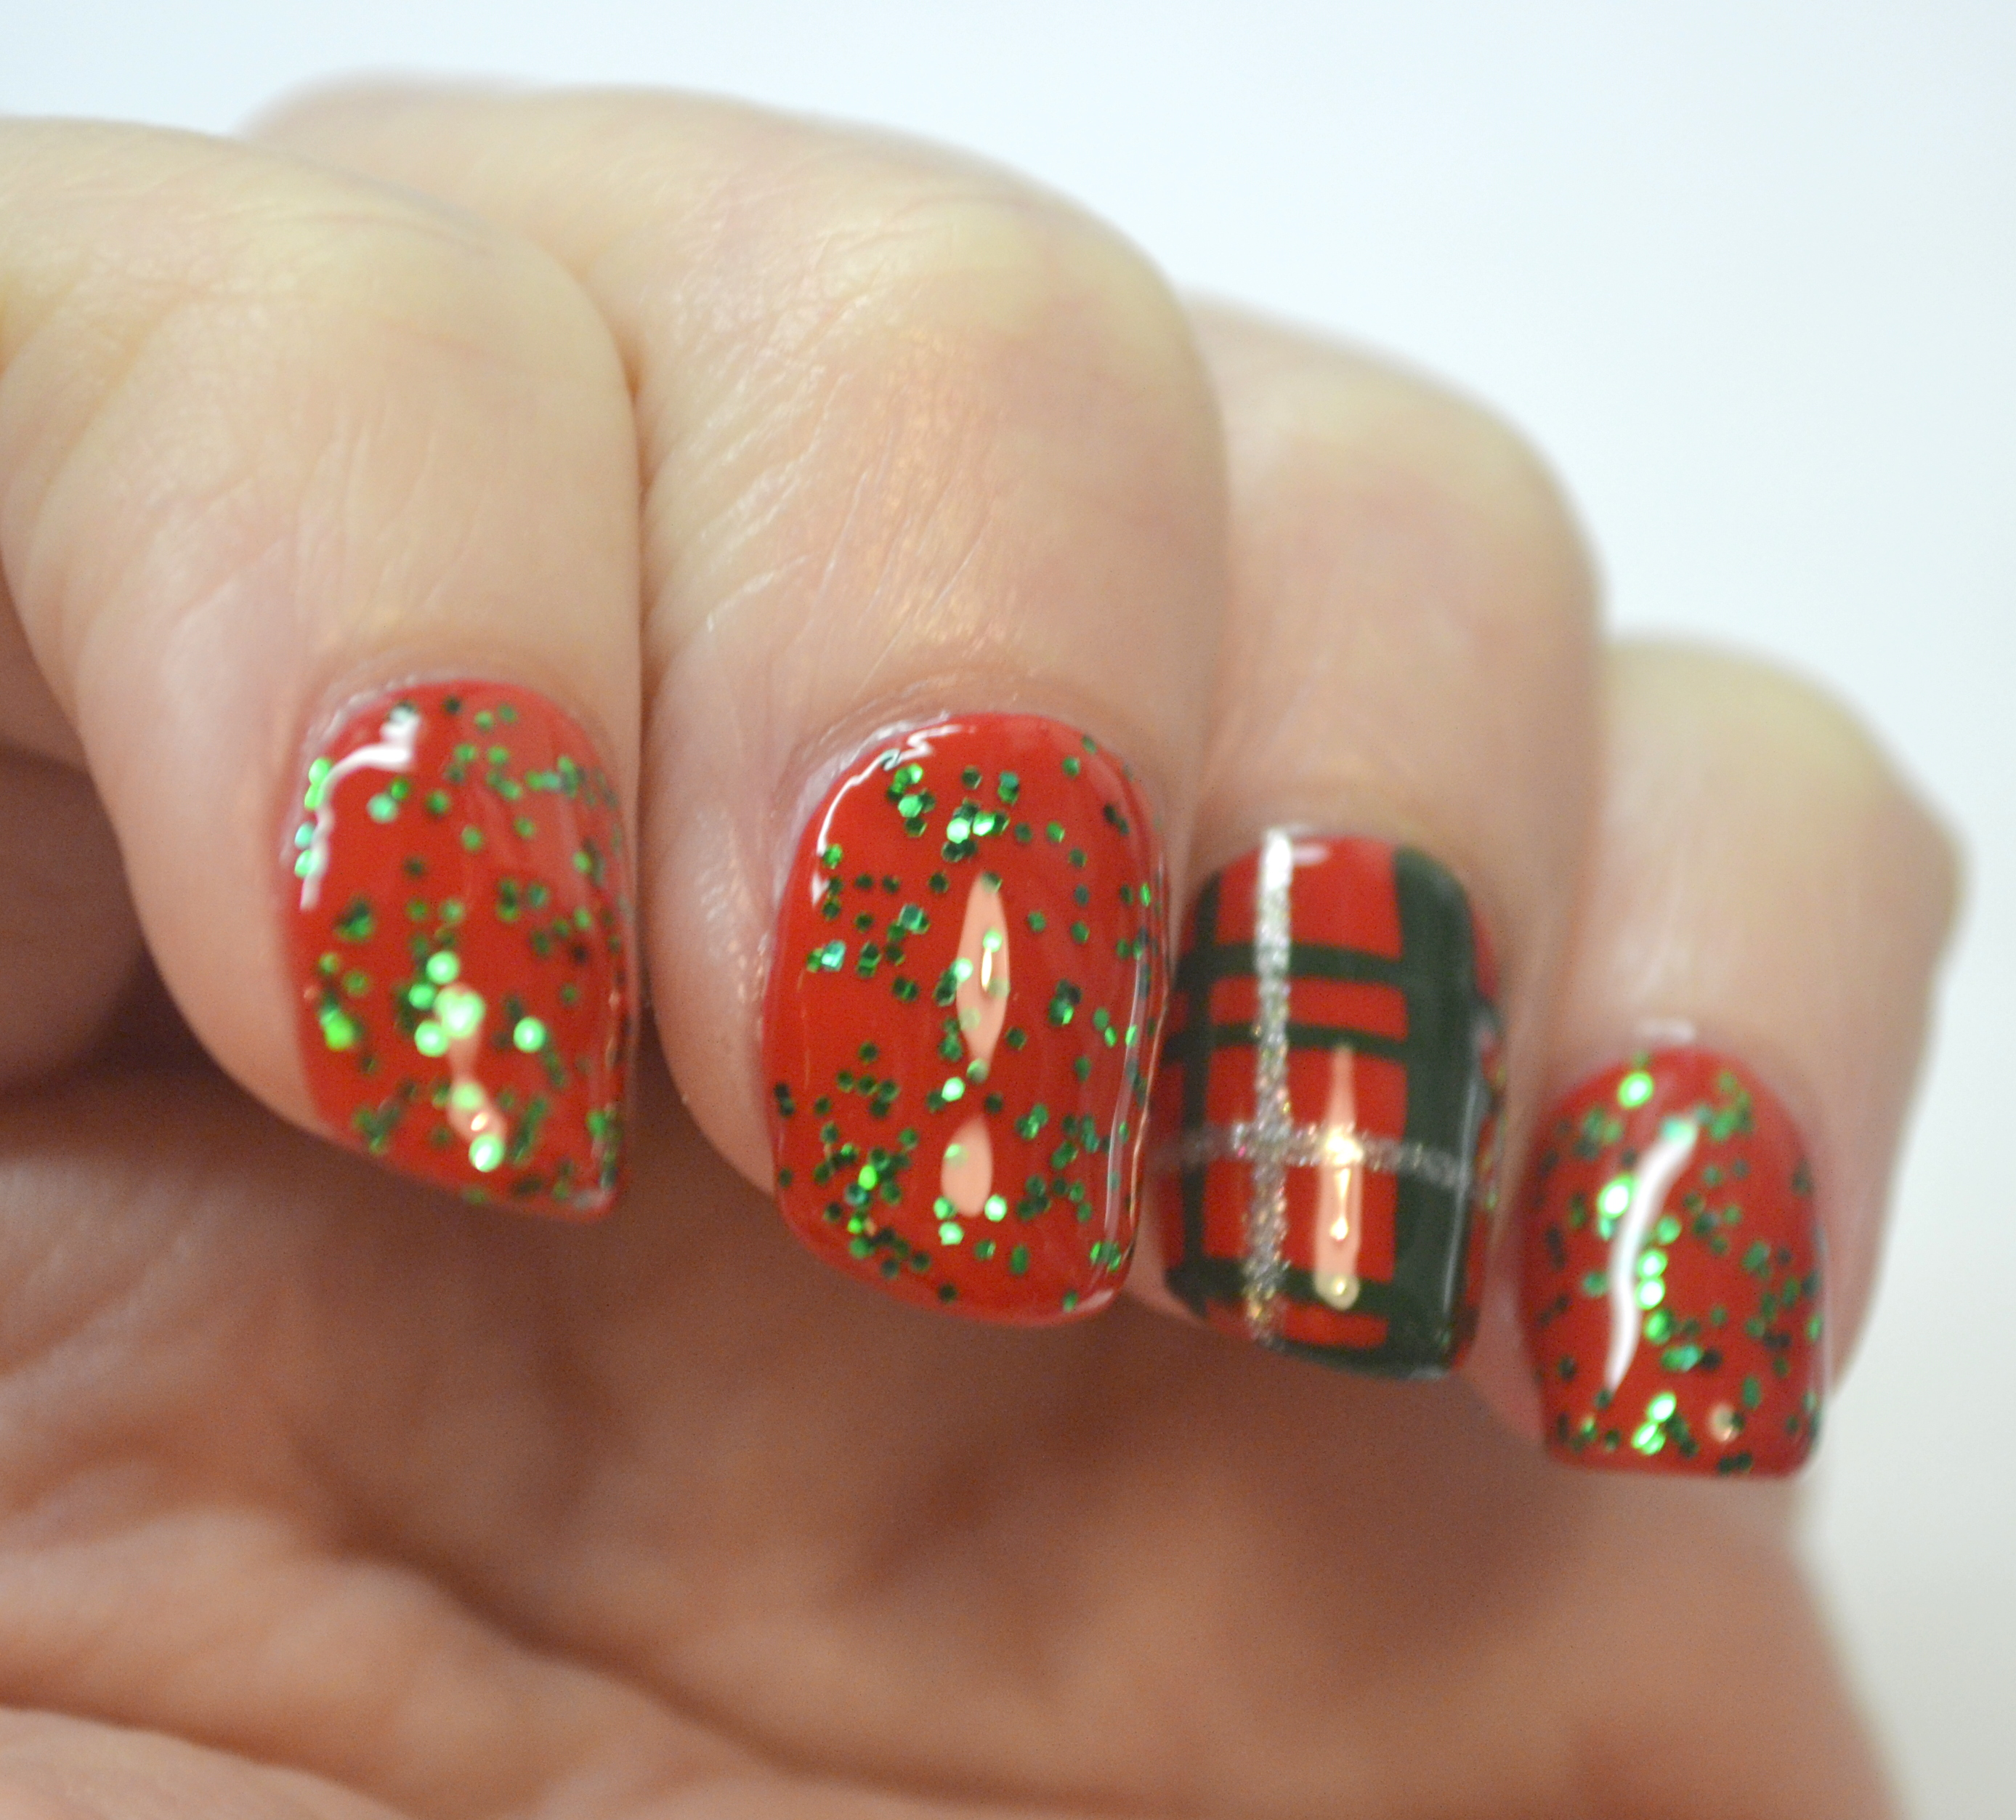 Christmas Nails Green And Red: CYNA 12 Days Of Christmas, Day 7-Red And Green